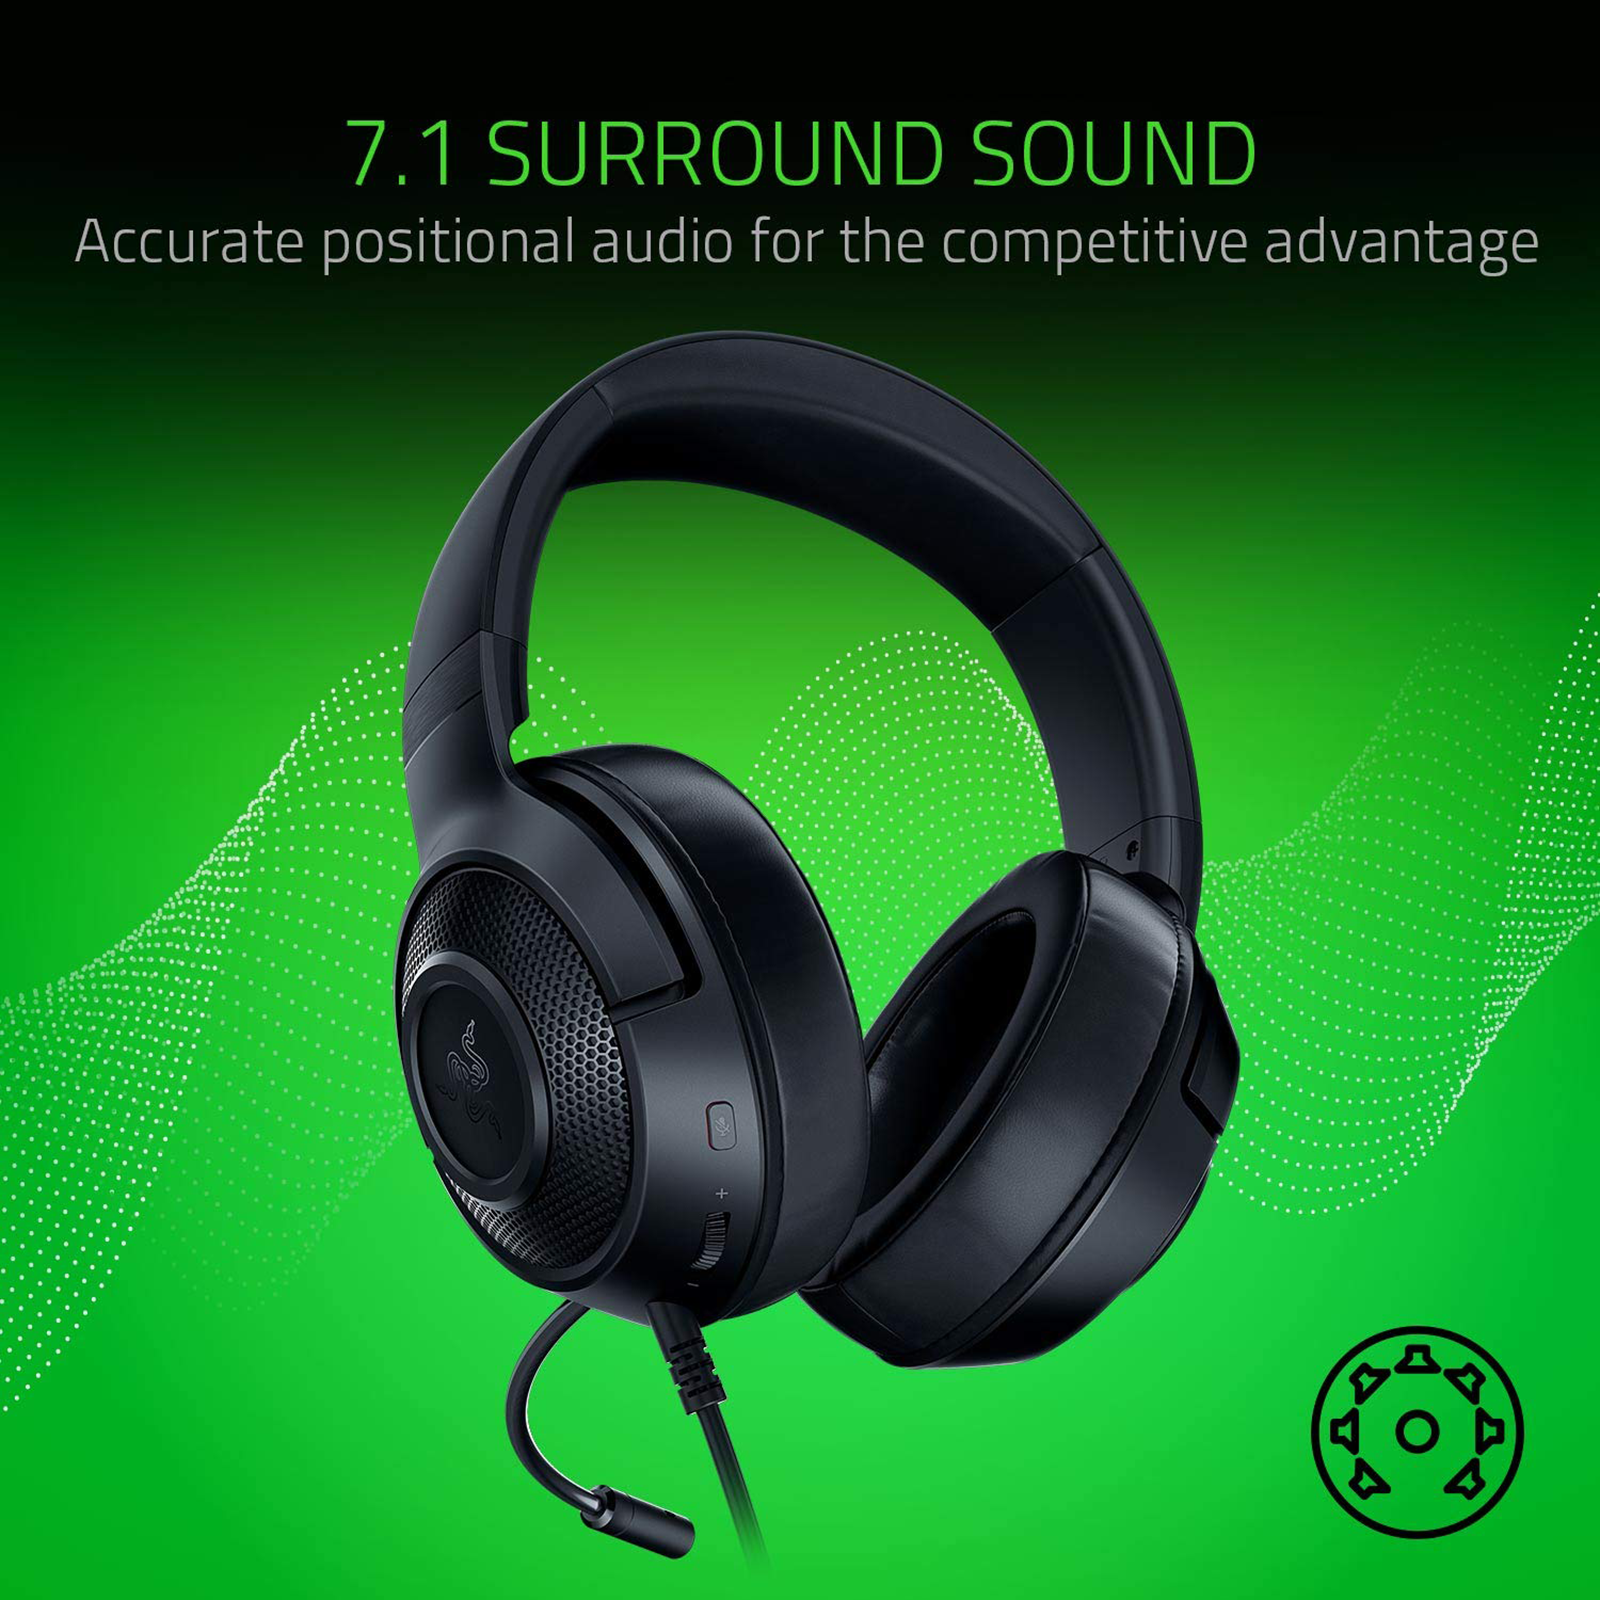 Razer Kraken Over-Ear Wired Gaming Headset with Mic (Clear & Powerful Sound, RZ04-02830100-R3M1, Black)_3